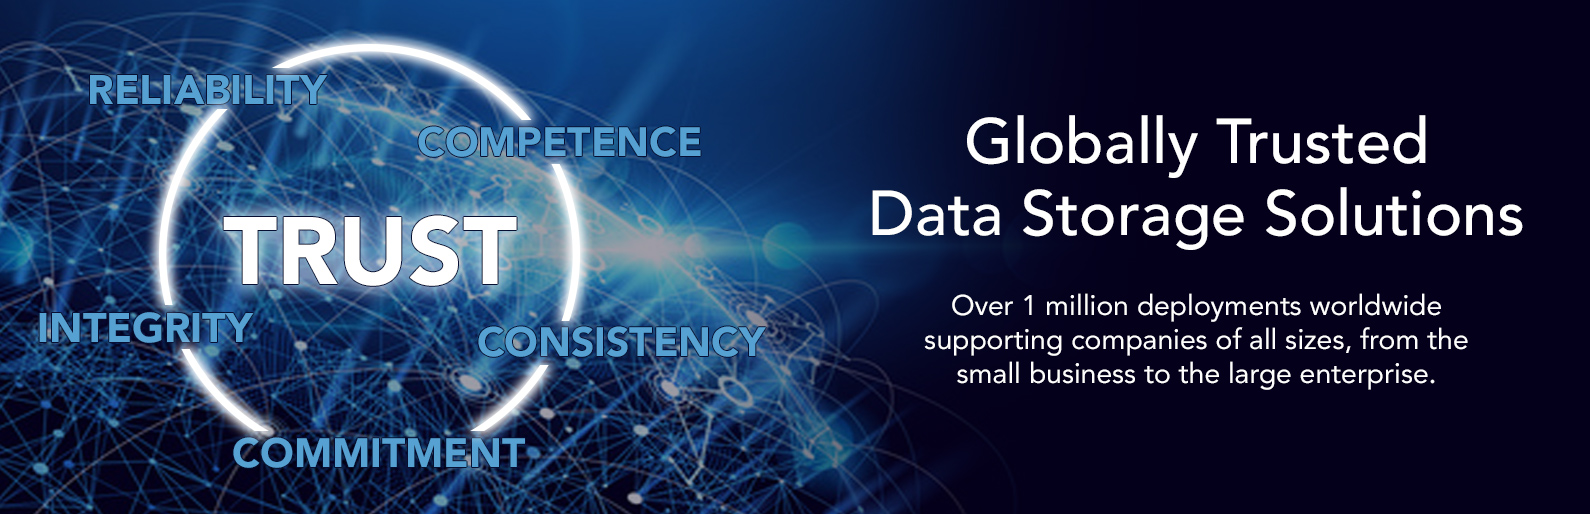 Globally Trusted Data Storage Solutions